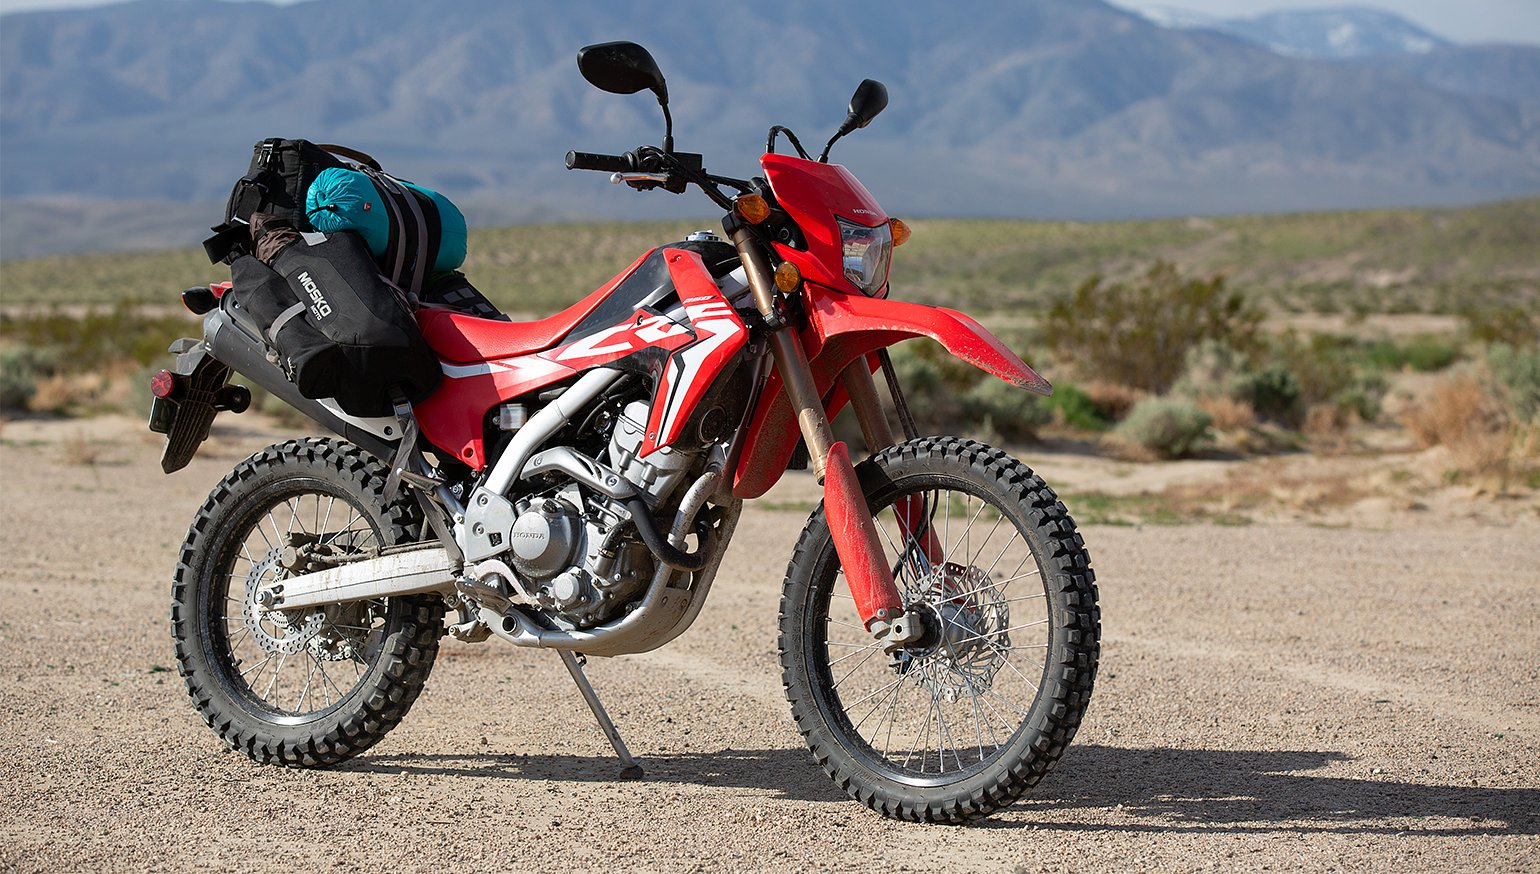 A Cameraman Reviews The 2020 Honda Crf250l Revzilla